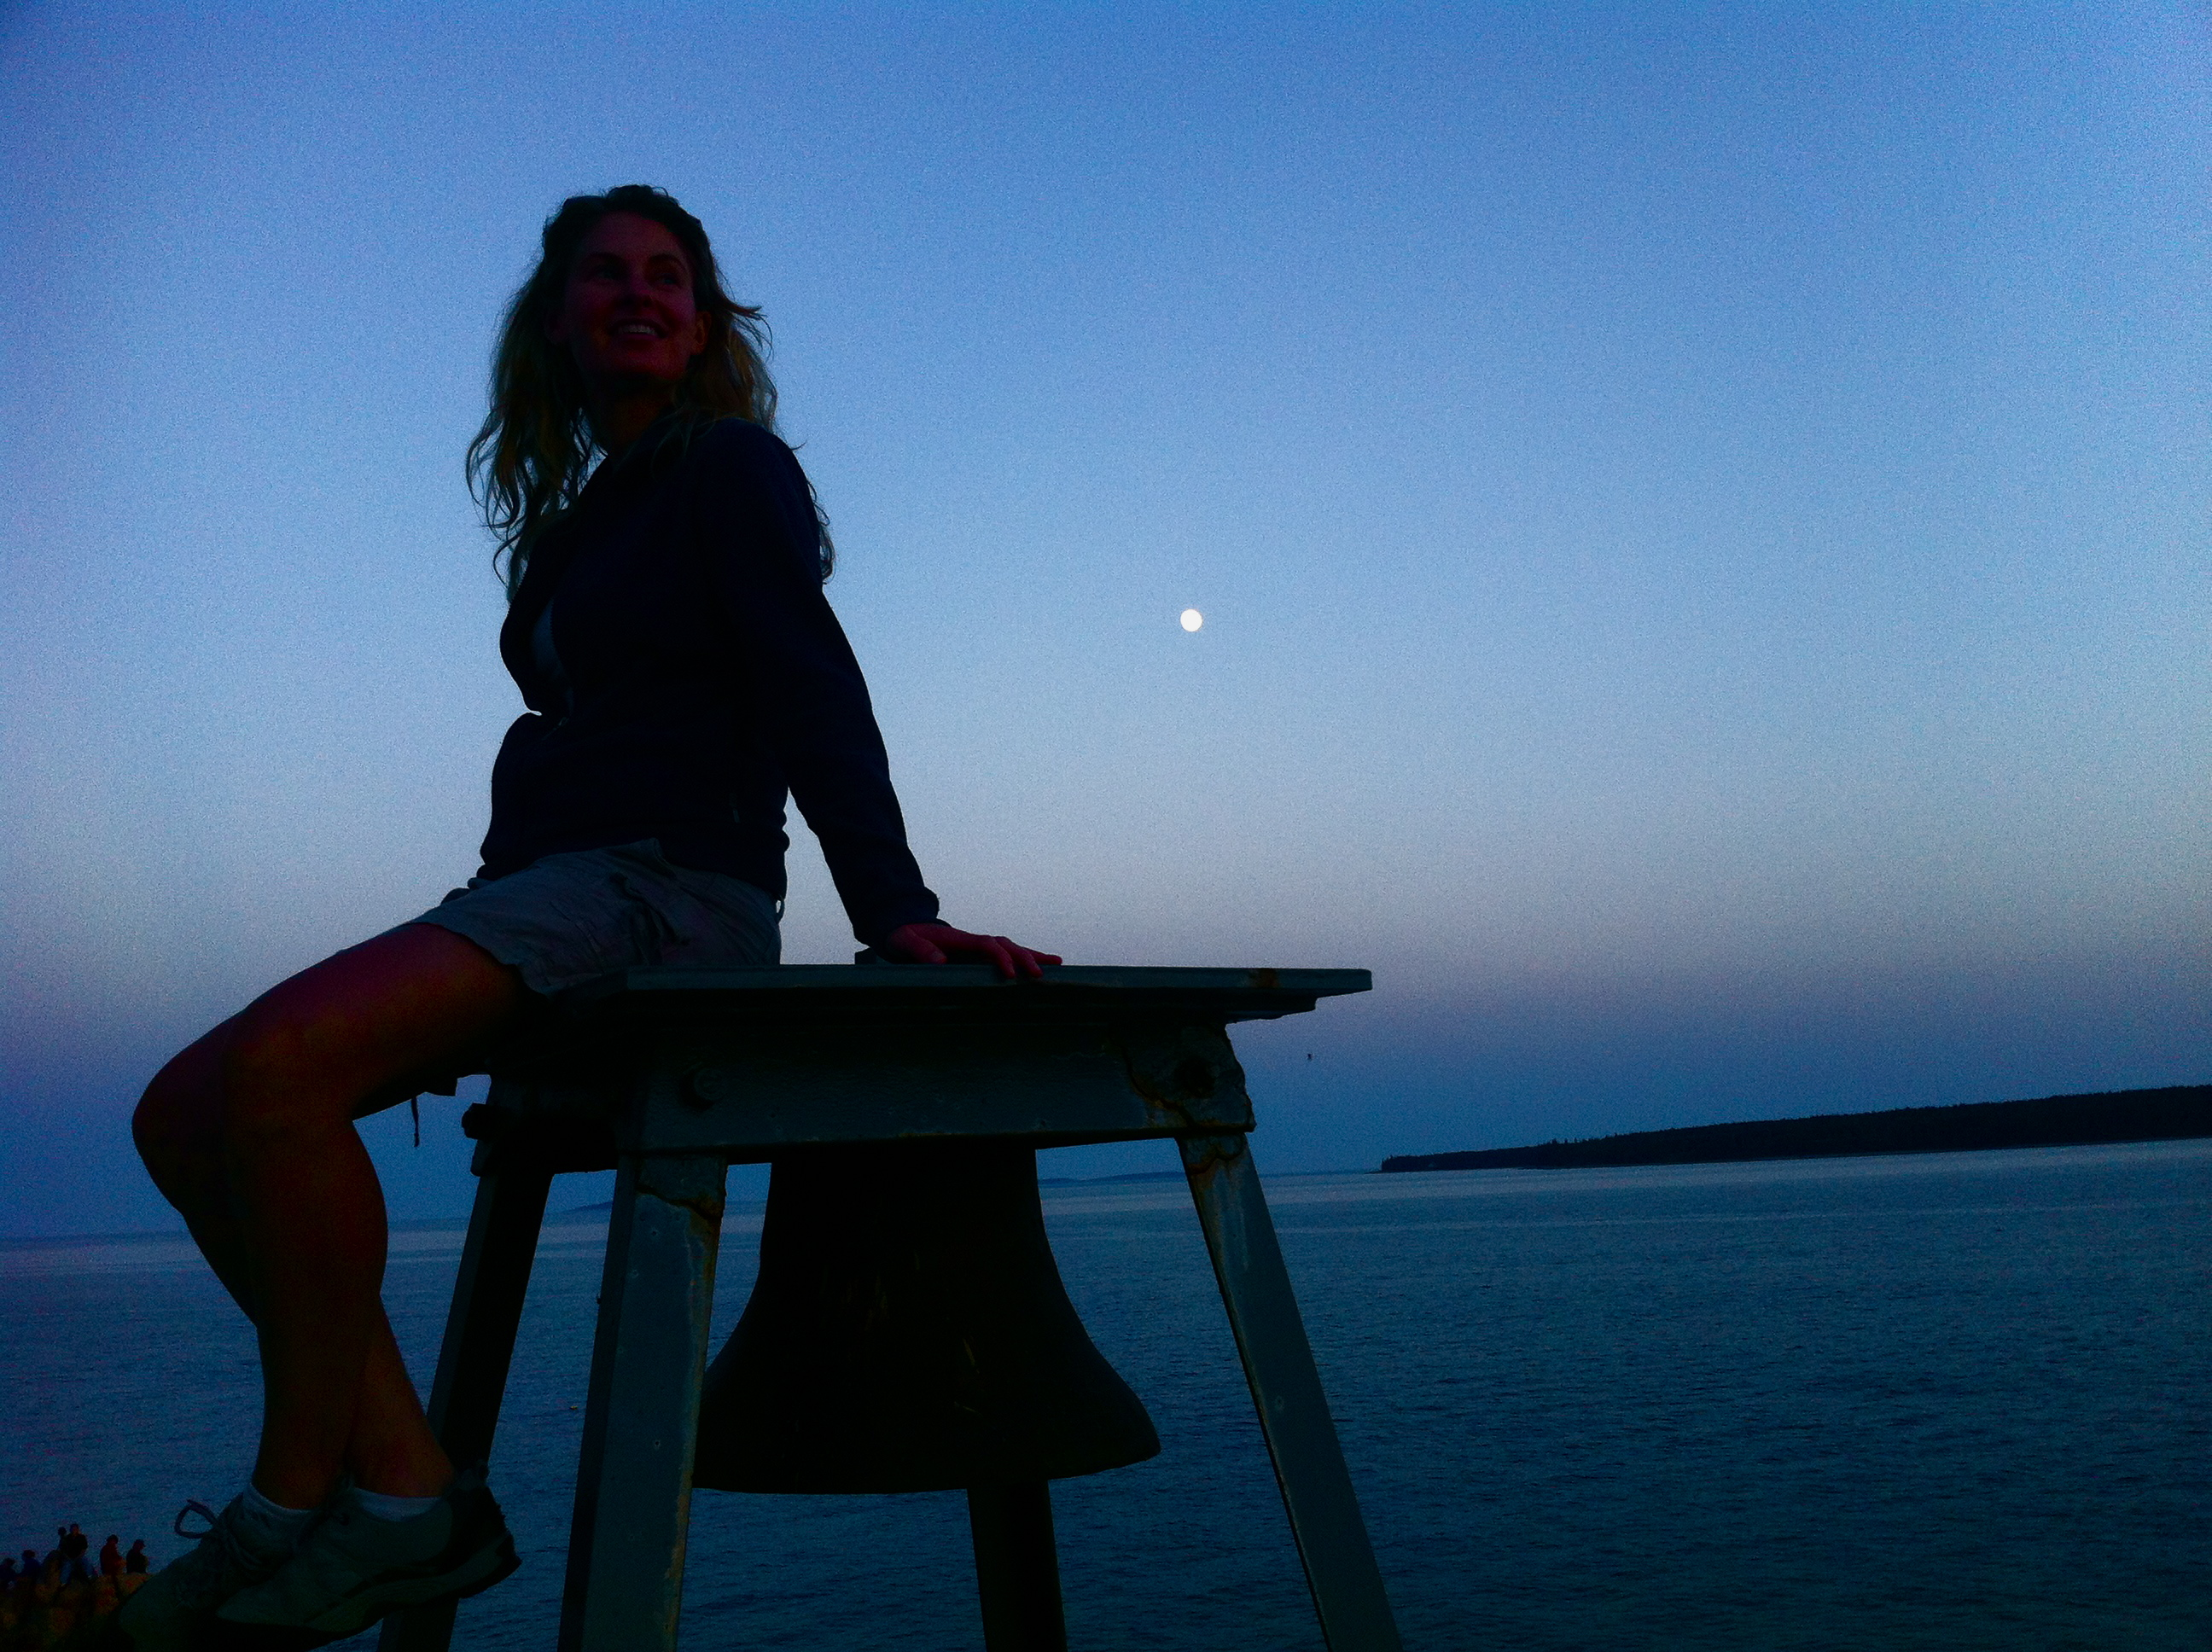 Maine, Me & the Moon